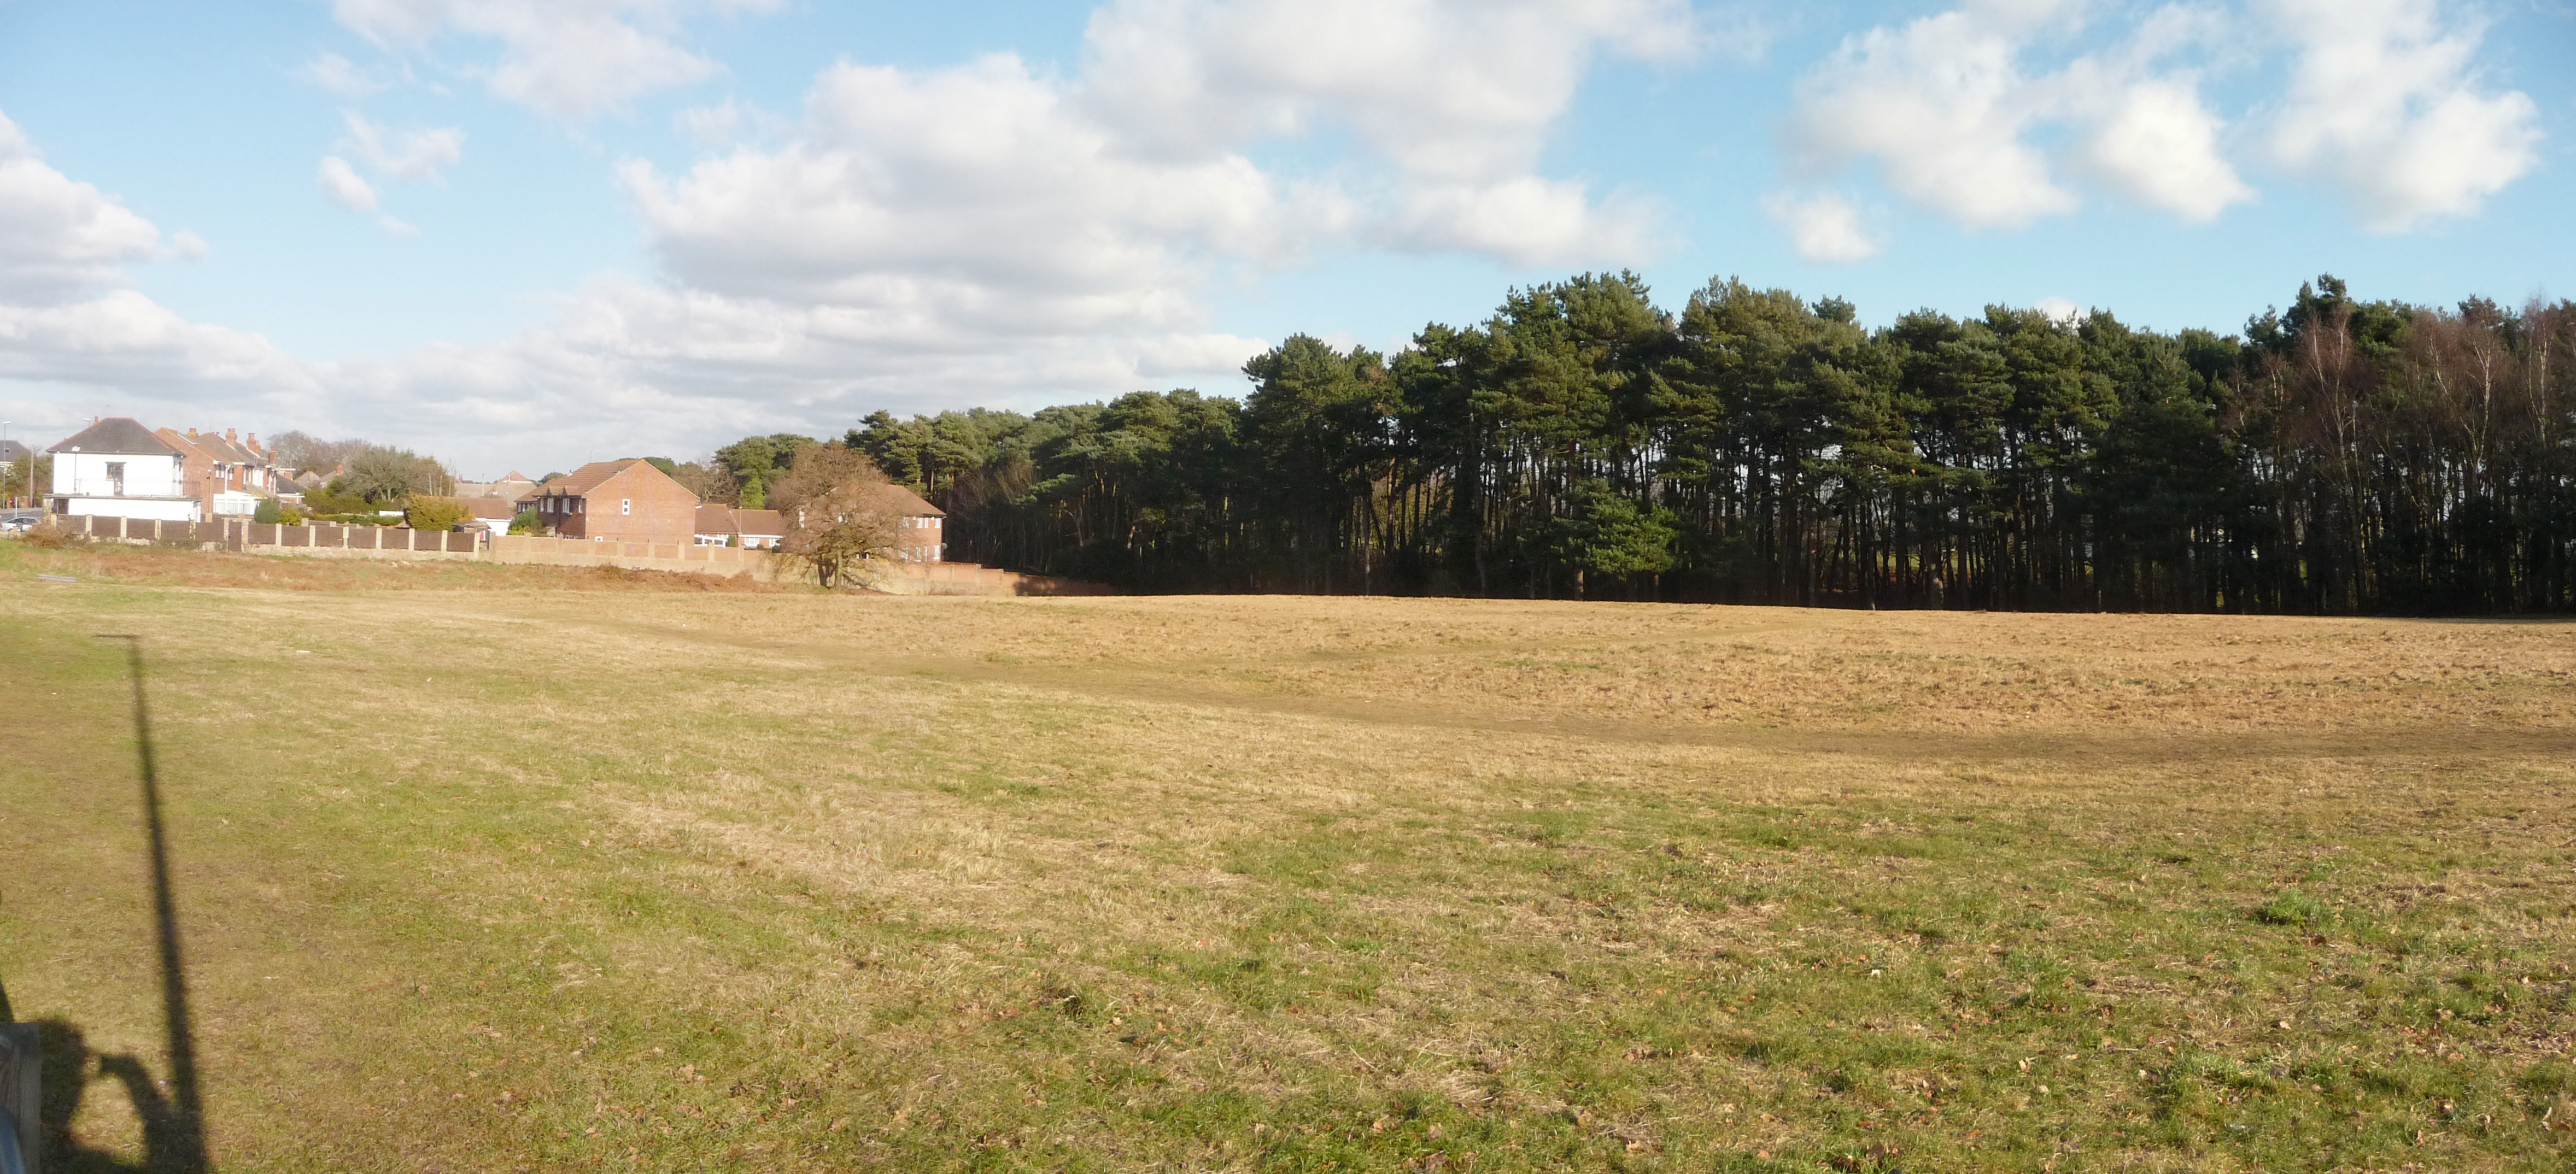 Bournemouth_%2C_Grassy_Field_and_Trees_-_geograph.org.uk_-_1703915.jpg